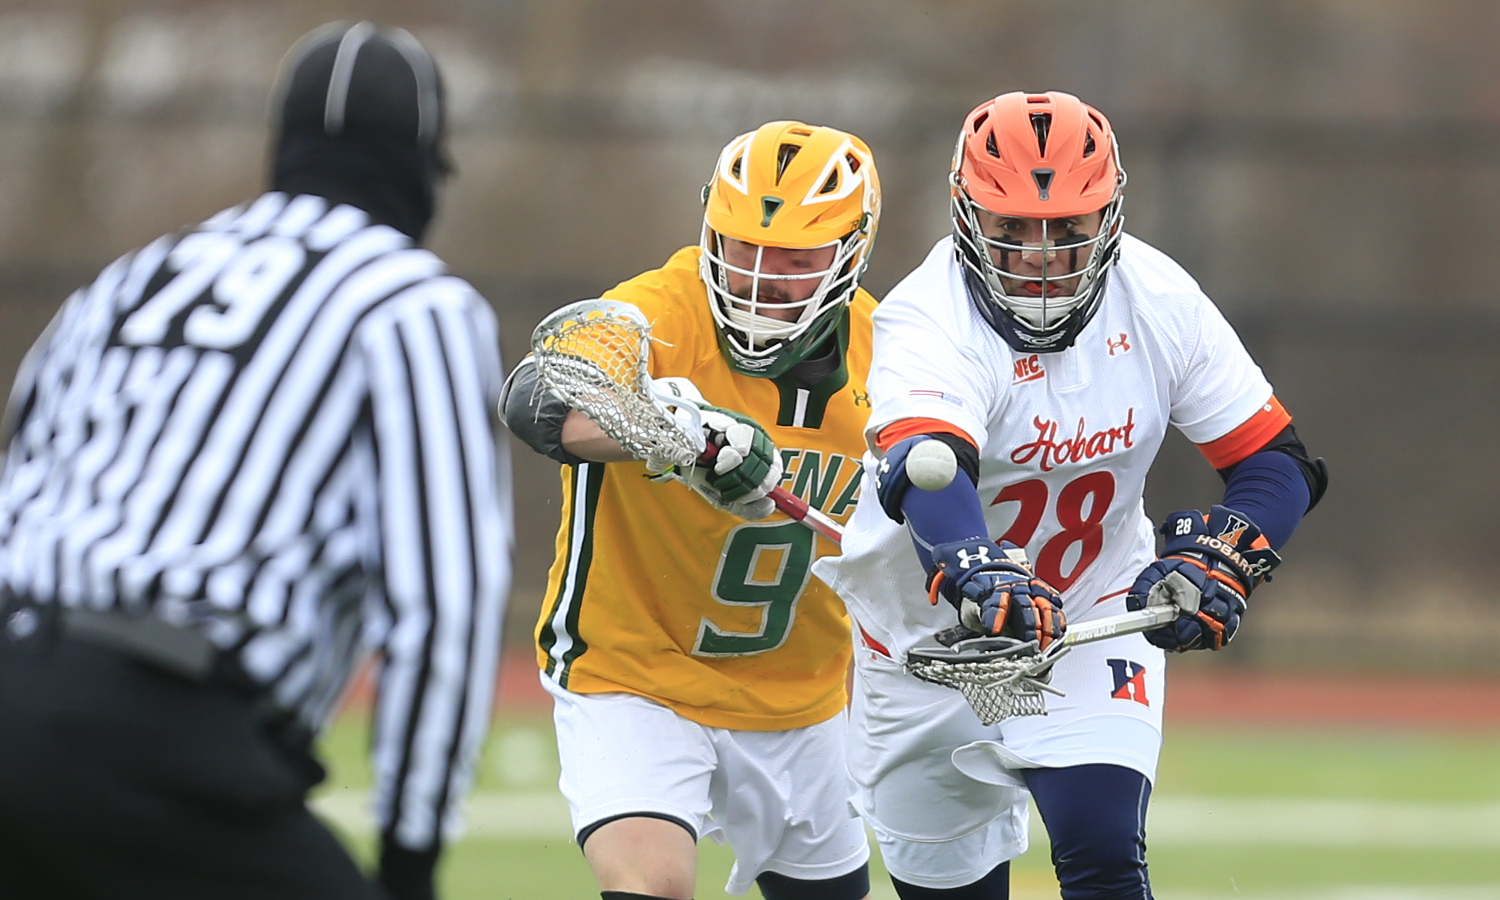 Matthew Pedicine '19 corrals a loose ball during Hobart's 11-12 loss to Siena College.